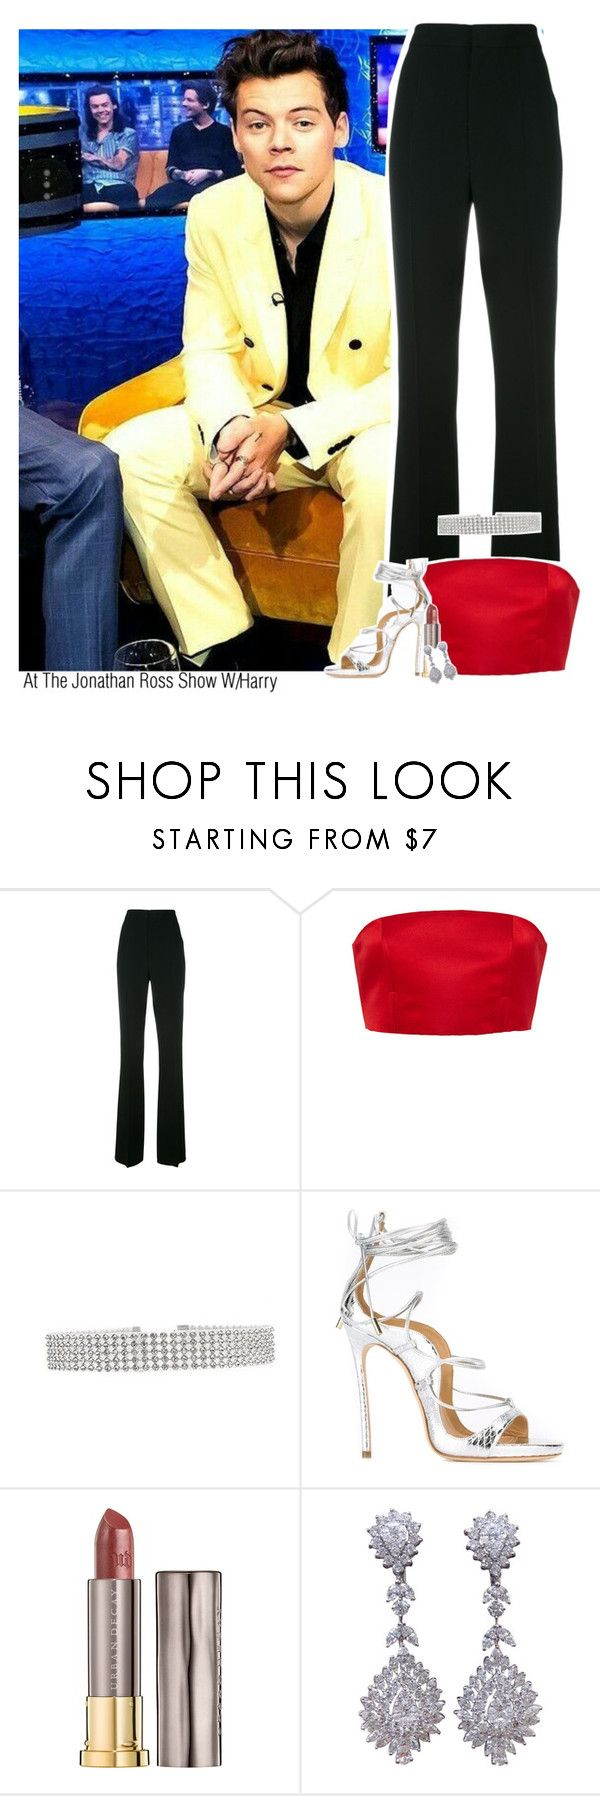 """""""At The Jonathan Ross Show W/Harry"""" by jhessicakauana ❤ liked on Polyvore featuring Dsquared2, Katie Ermilio and Urban Decay"""